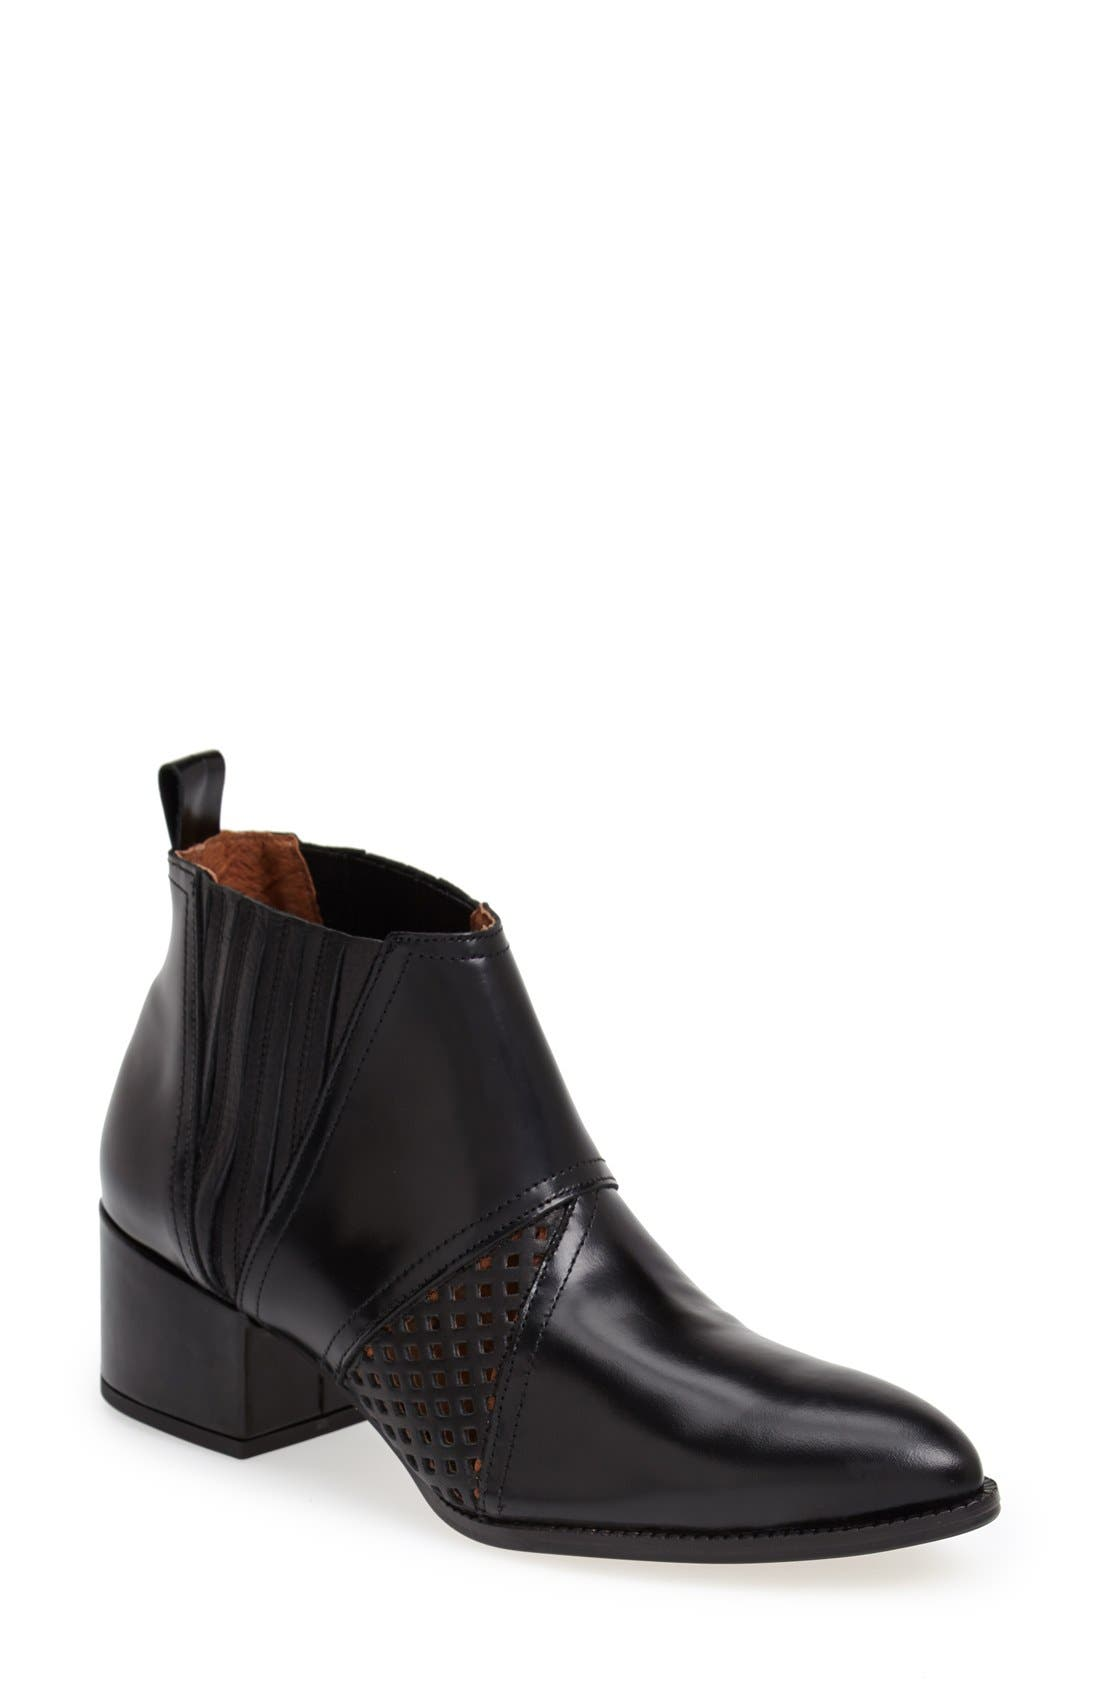 Main Image - SIXTYSEVEN 'Aria' Perforated Leather Bootie (Women)